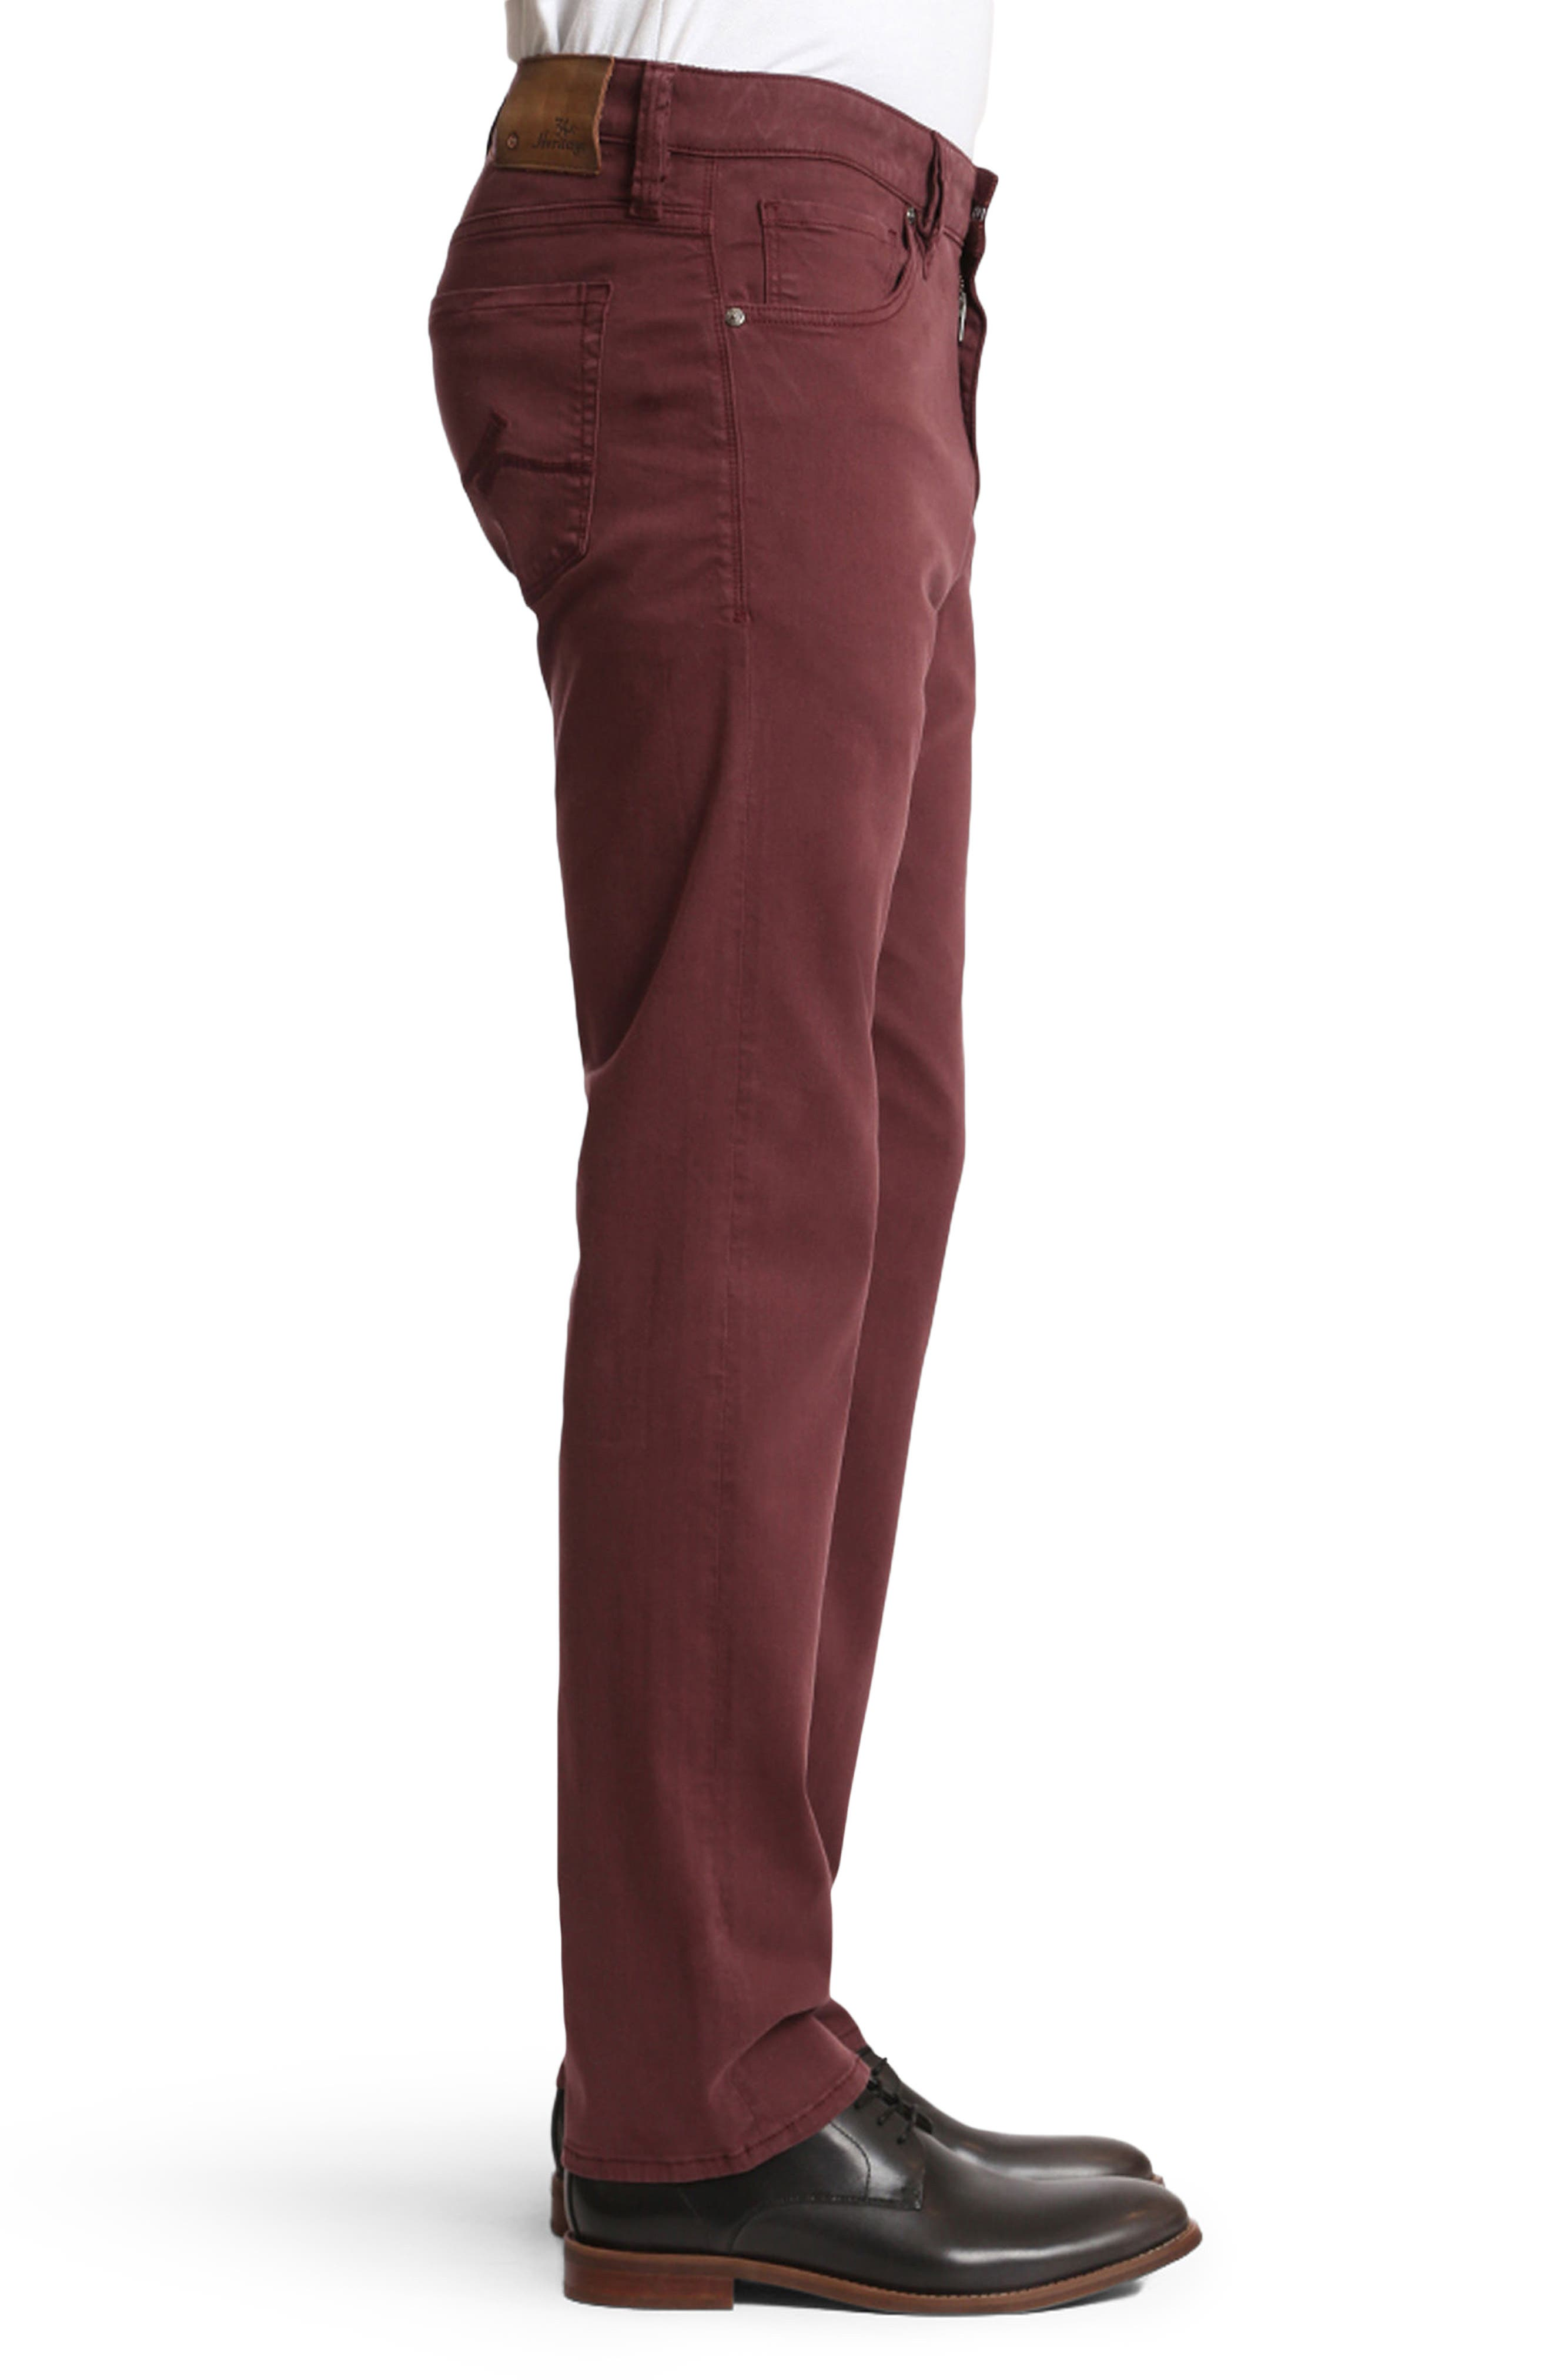 Courage Straight Leg Twill Pants,                             Alternate thumbnail 3, color,                             Bordeaux Twill